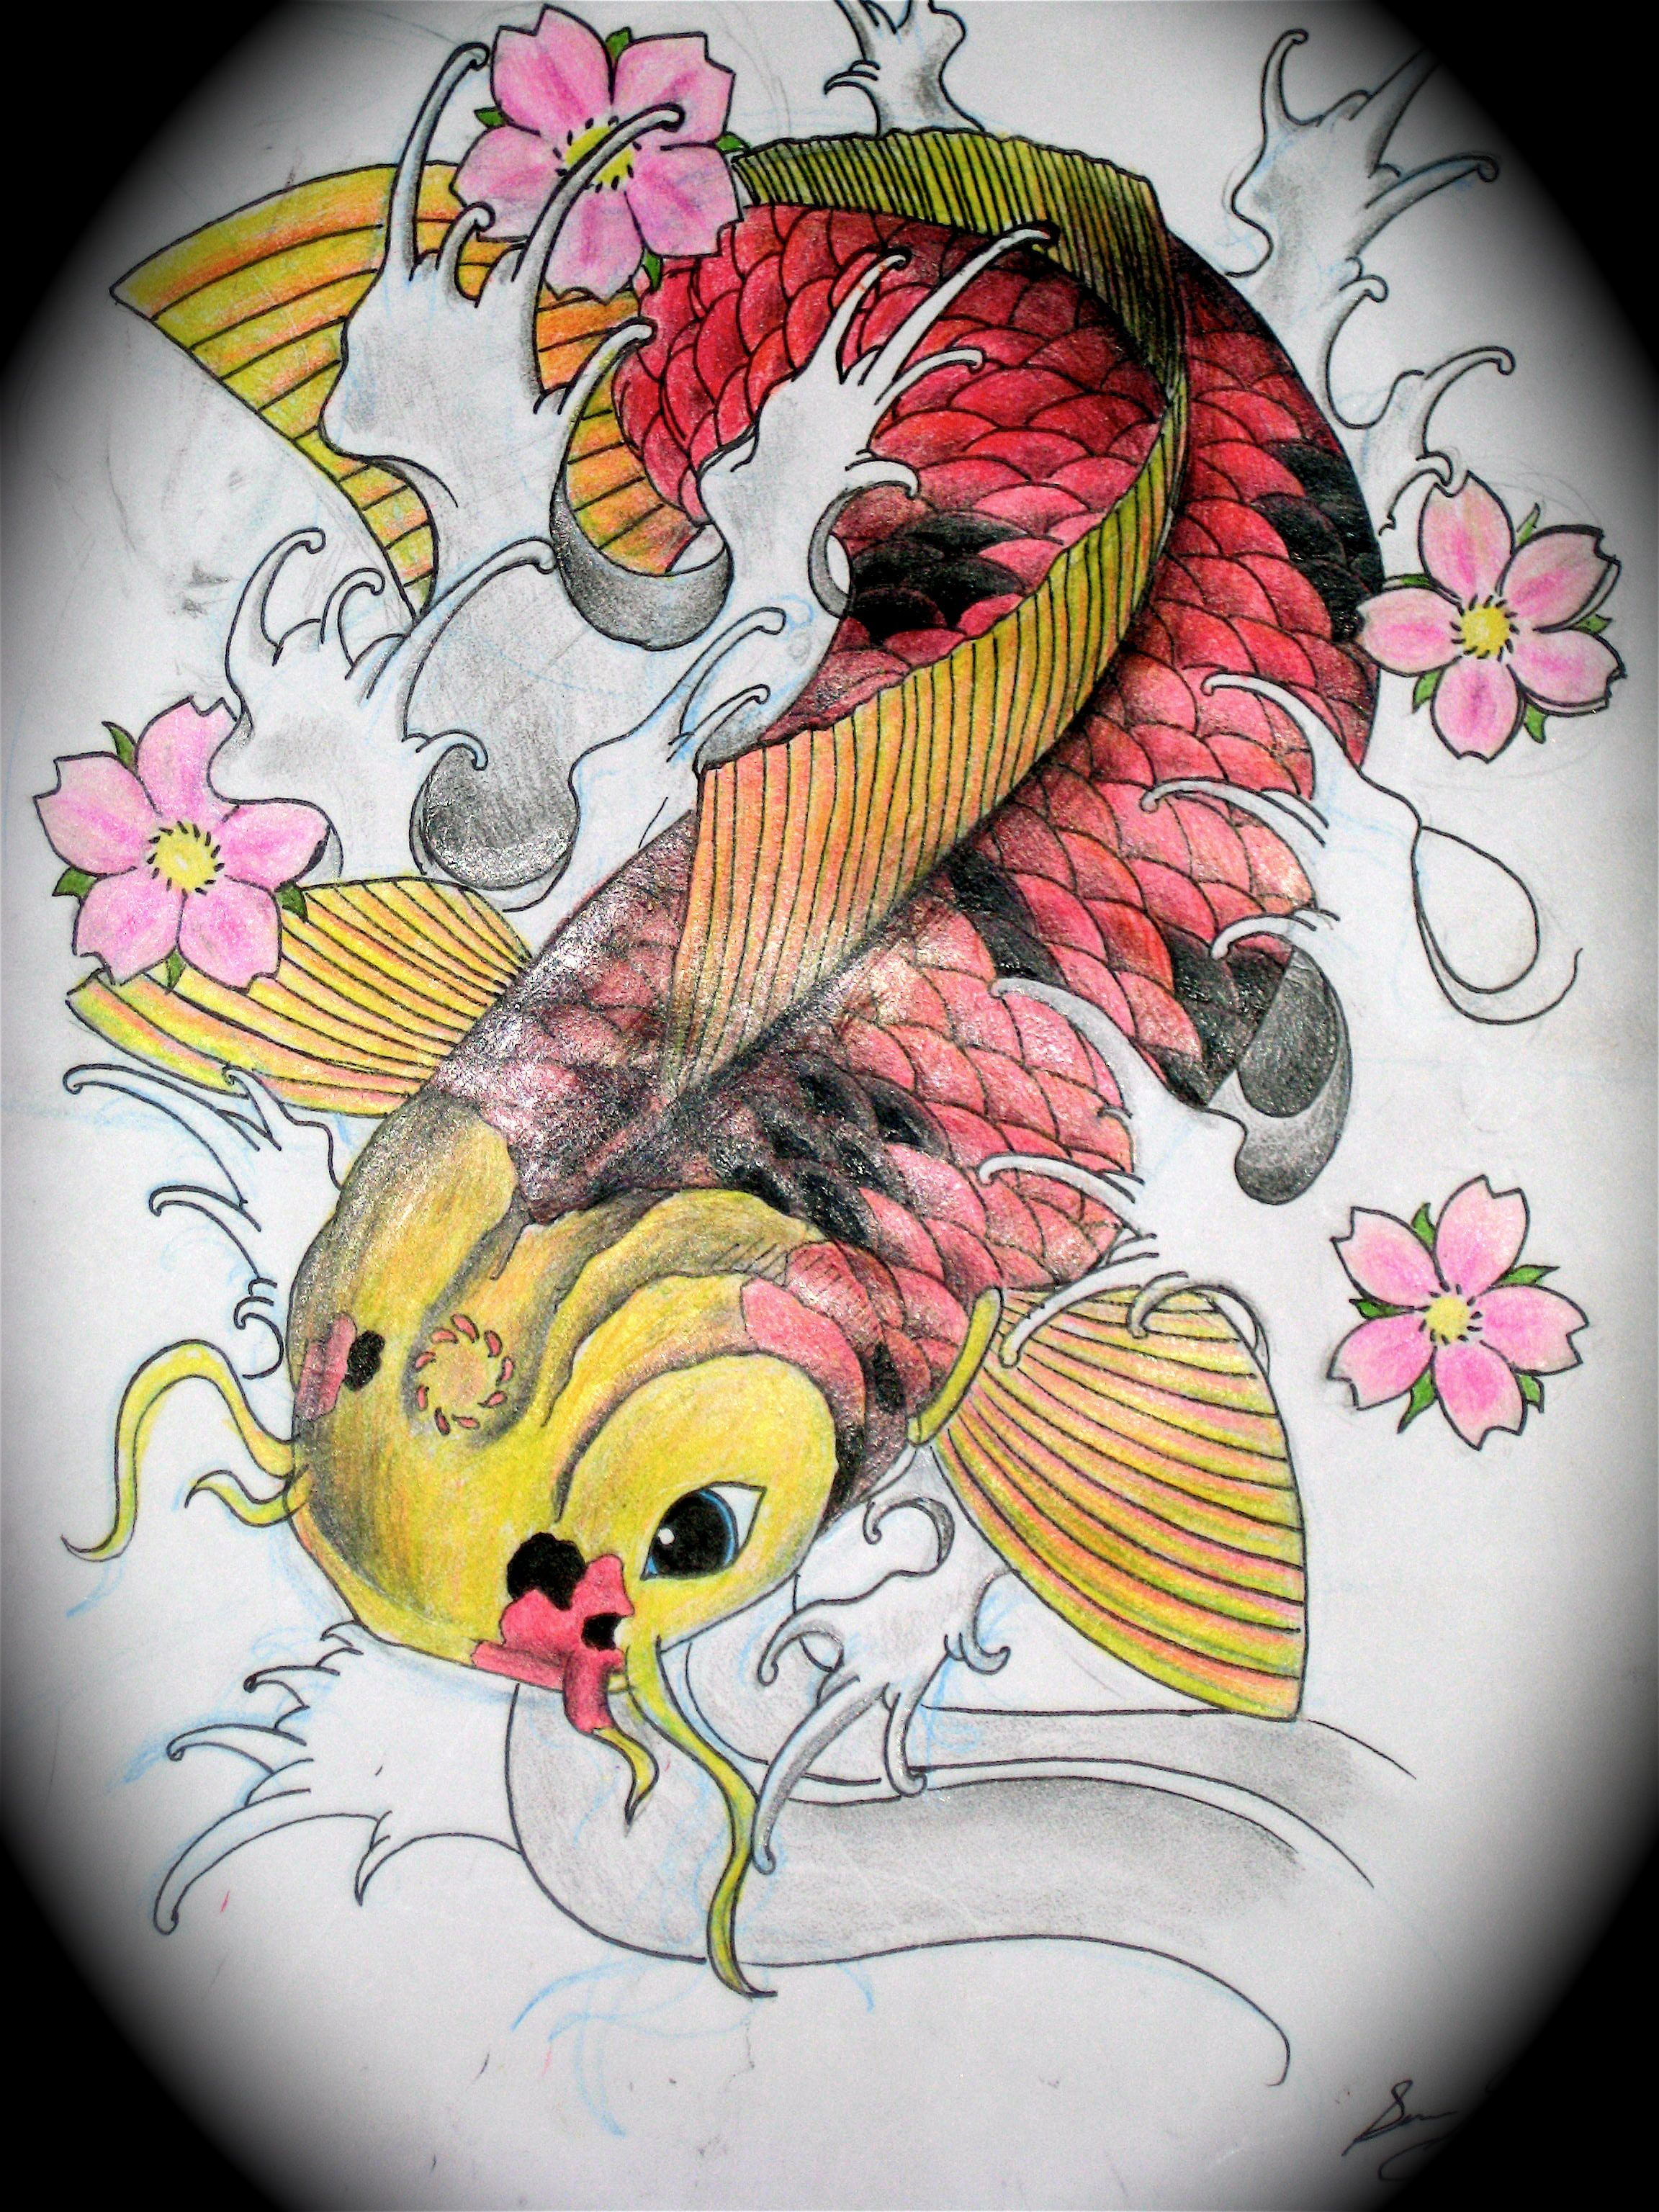 Koi Fish meaning in Japan is good fortune or luck they